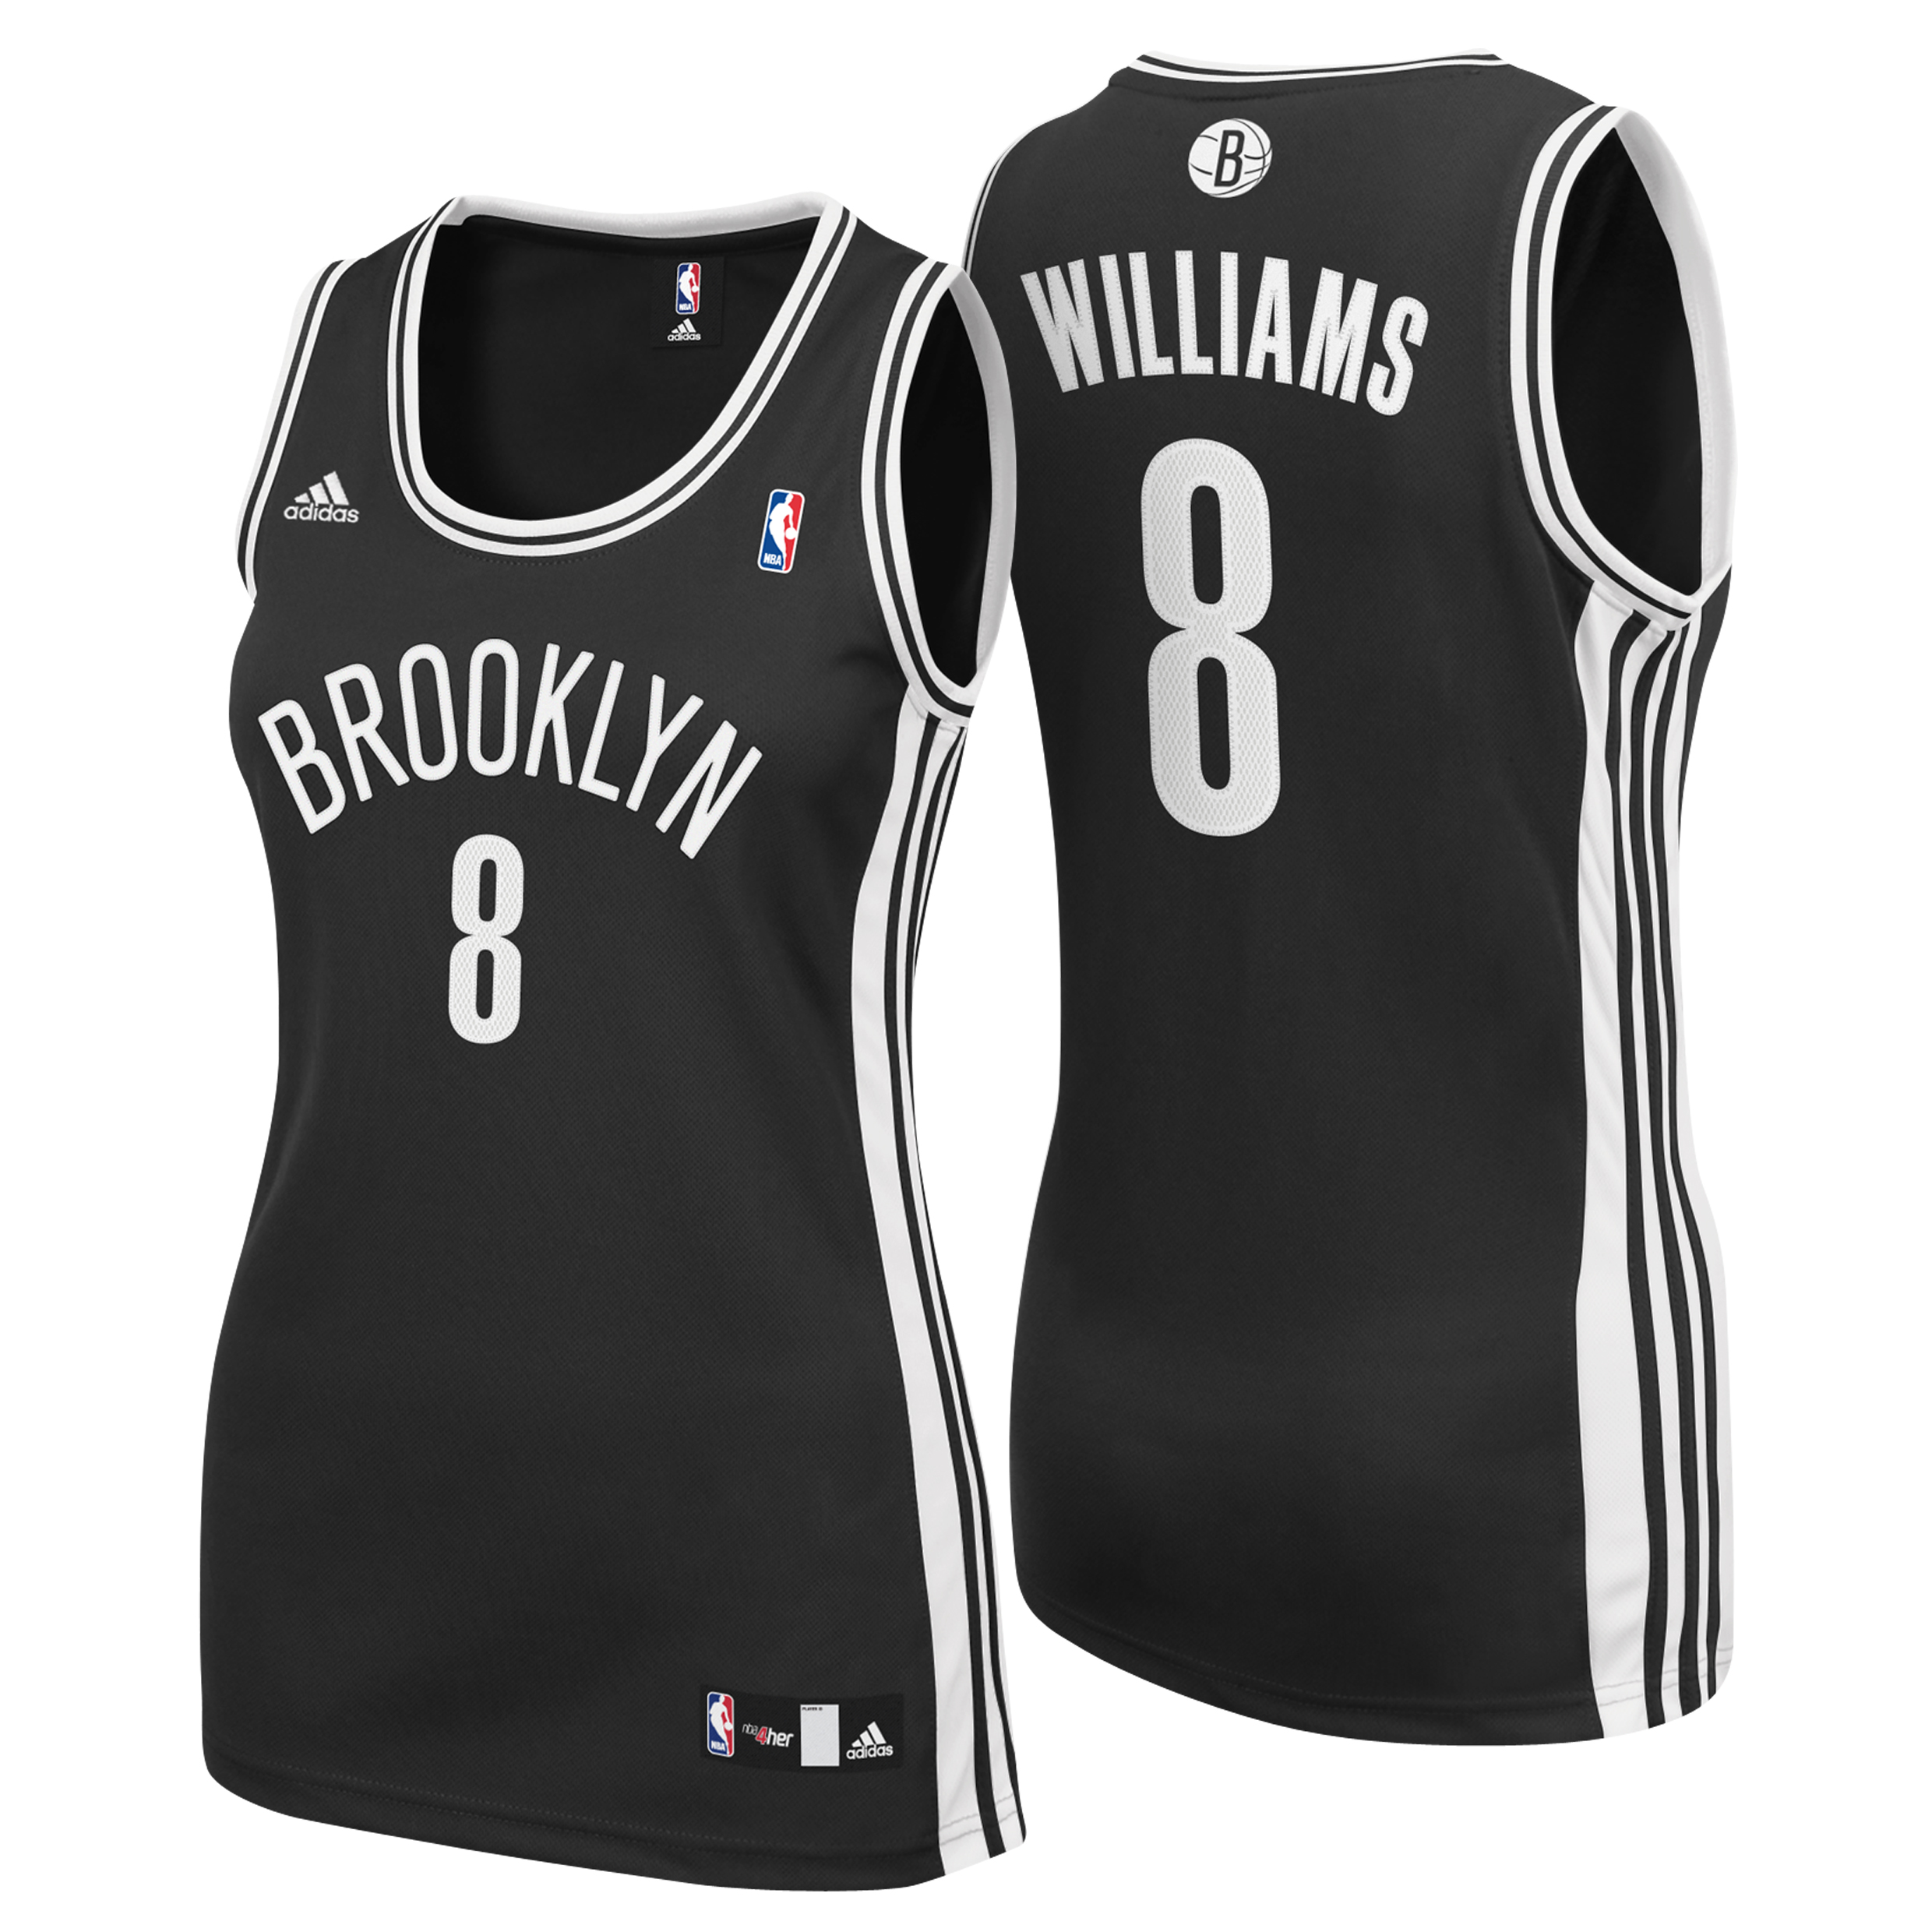 Brooklyn Nets Road Replica Jersey - Deron Williams - Womens